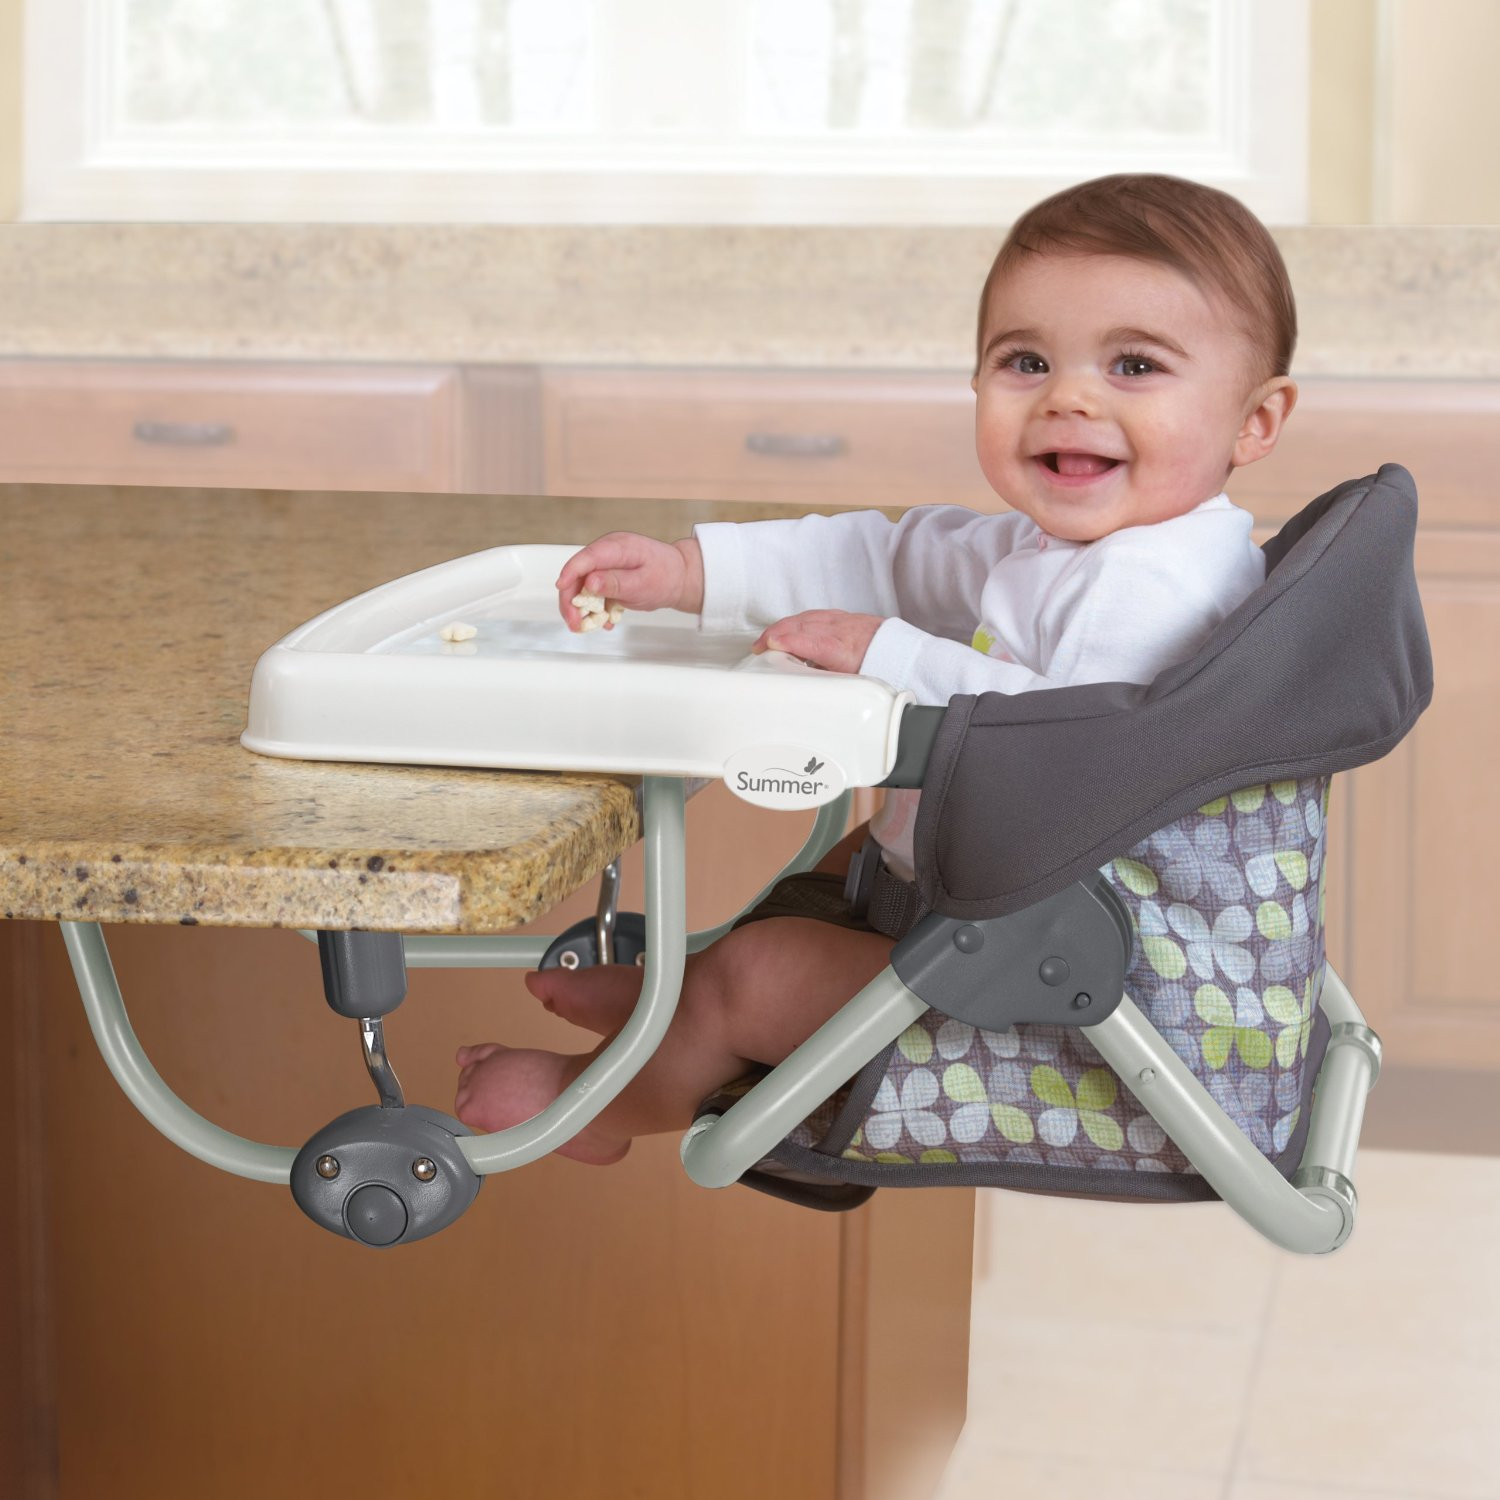 High Chair That Attaches To Counter How Much Is A Massage Baby Table Neat Idea